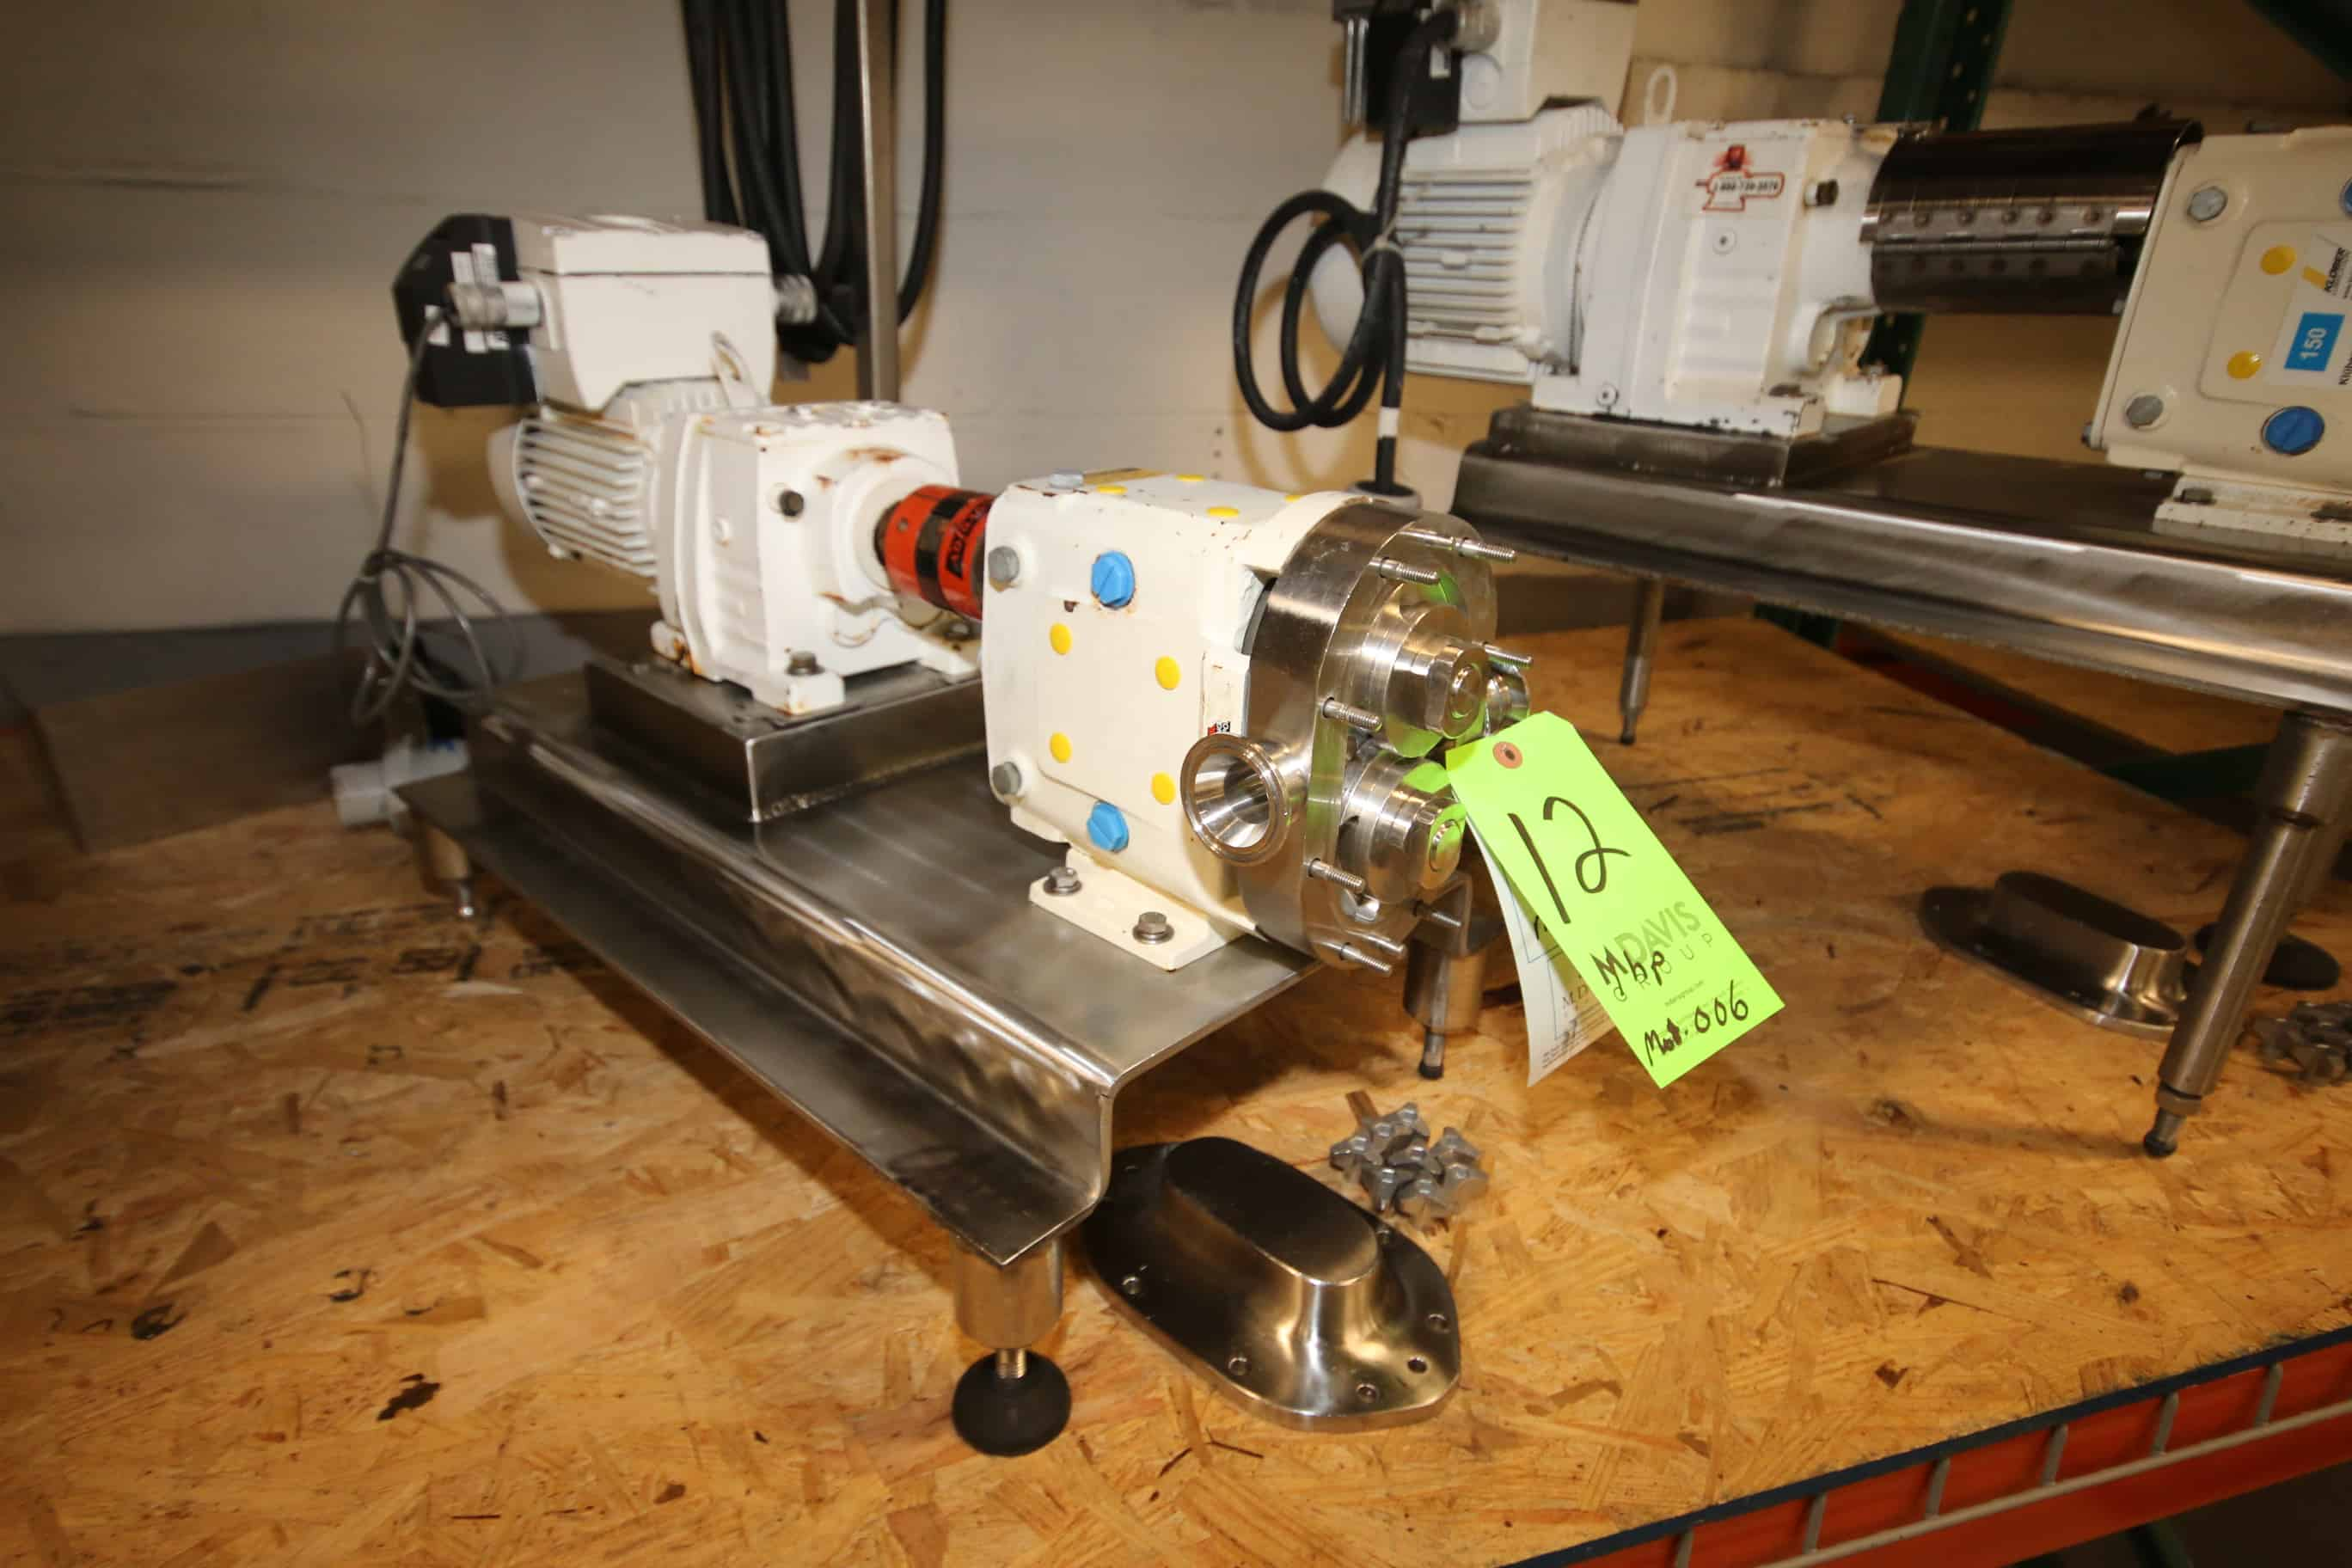 Waukesha-Cherry Burrell 1 hp Positive Displacement Pump, Model 006, S/N 261902-00 with 1-1/2″ Clamp Type S/S Head, SEW Drive 195 – 1700 RPM Motor and Onboard VFD, 460Y V, 3 Phase, Mounted on S/S Frame (Located in Pittsburgh)